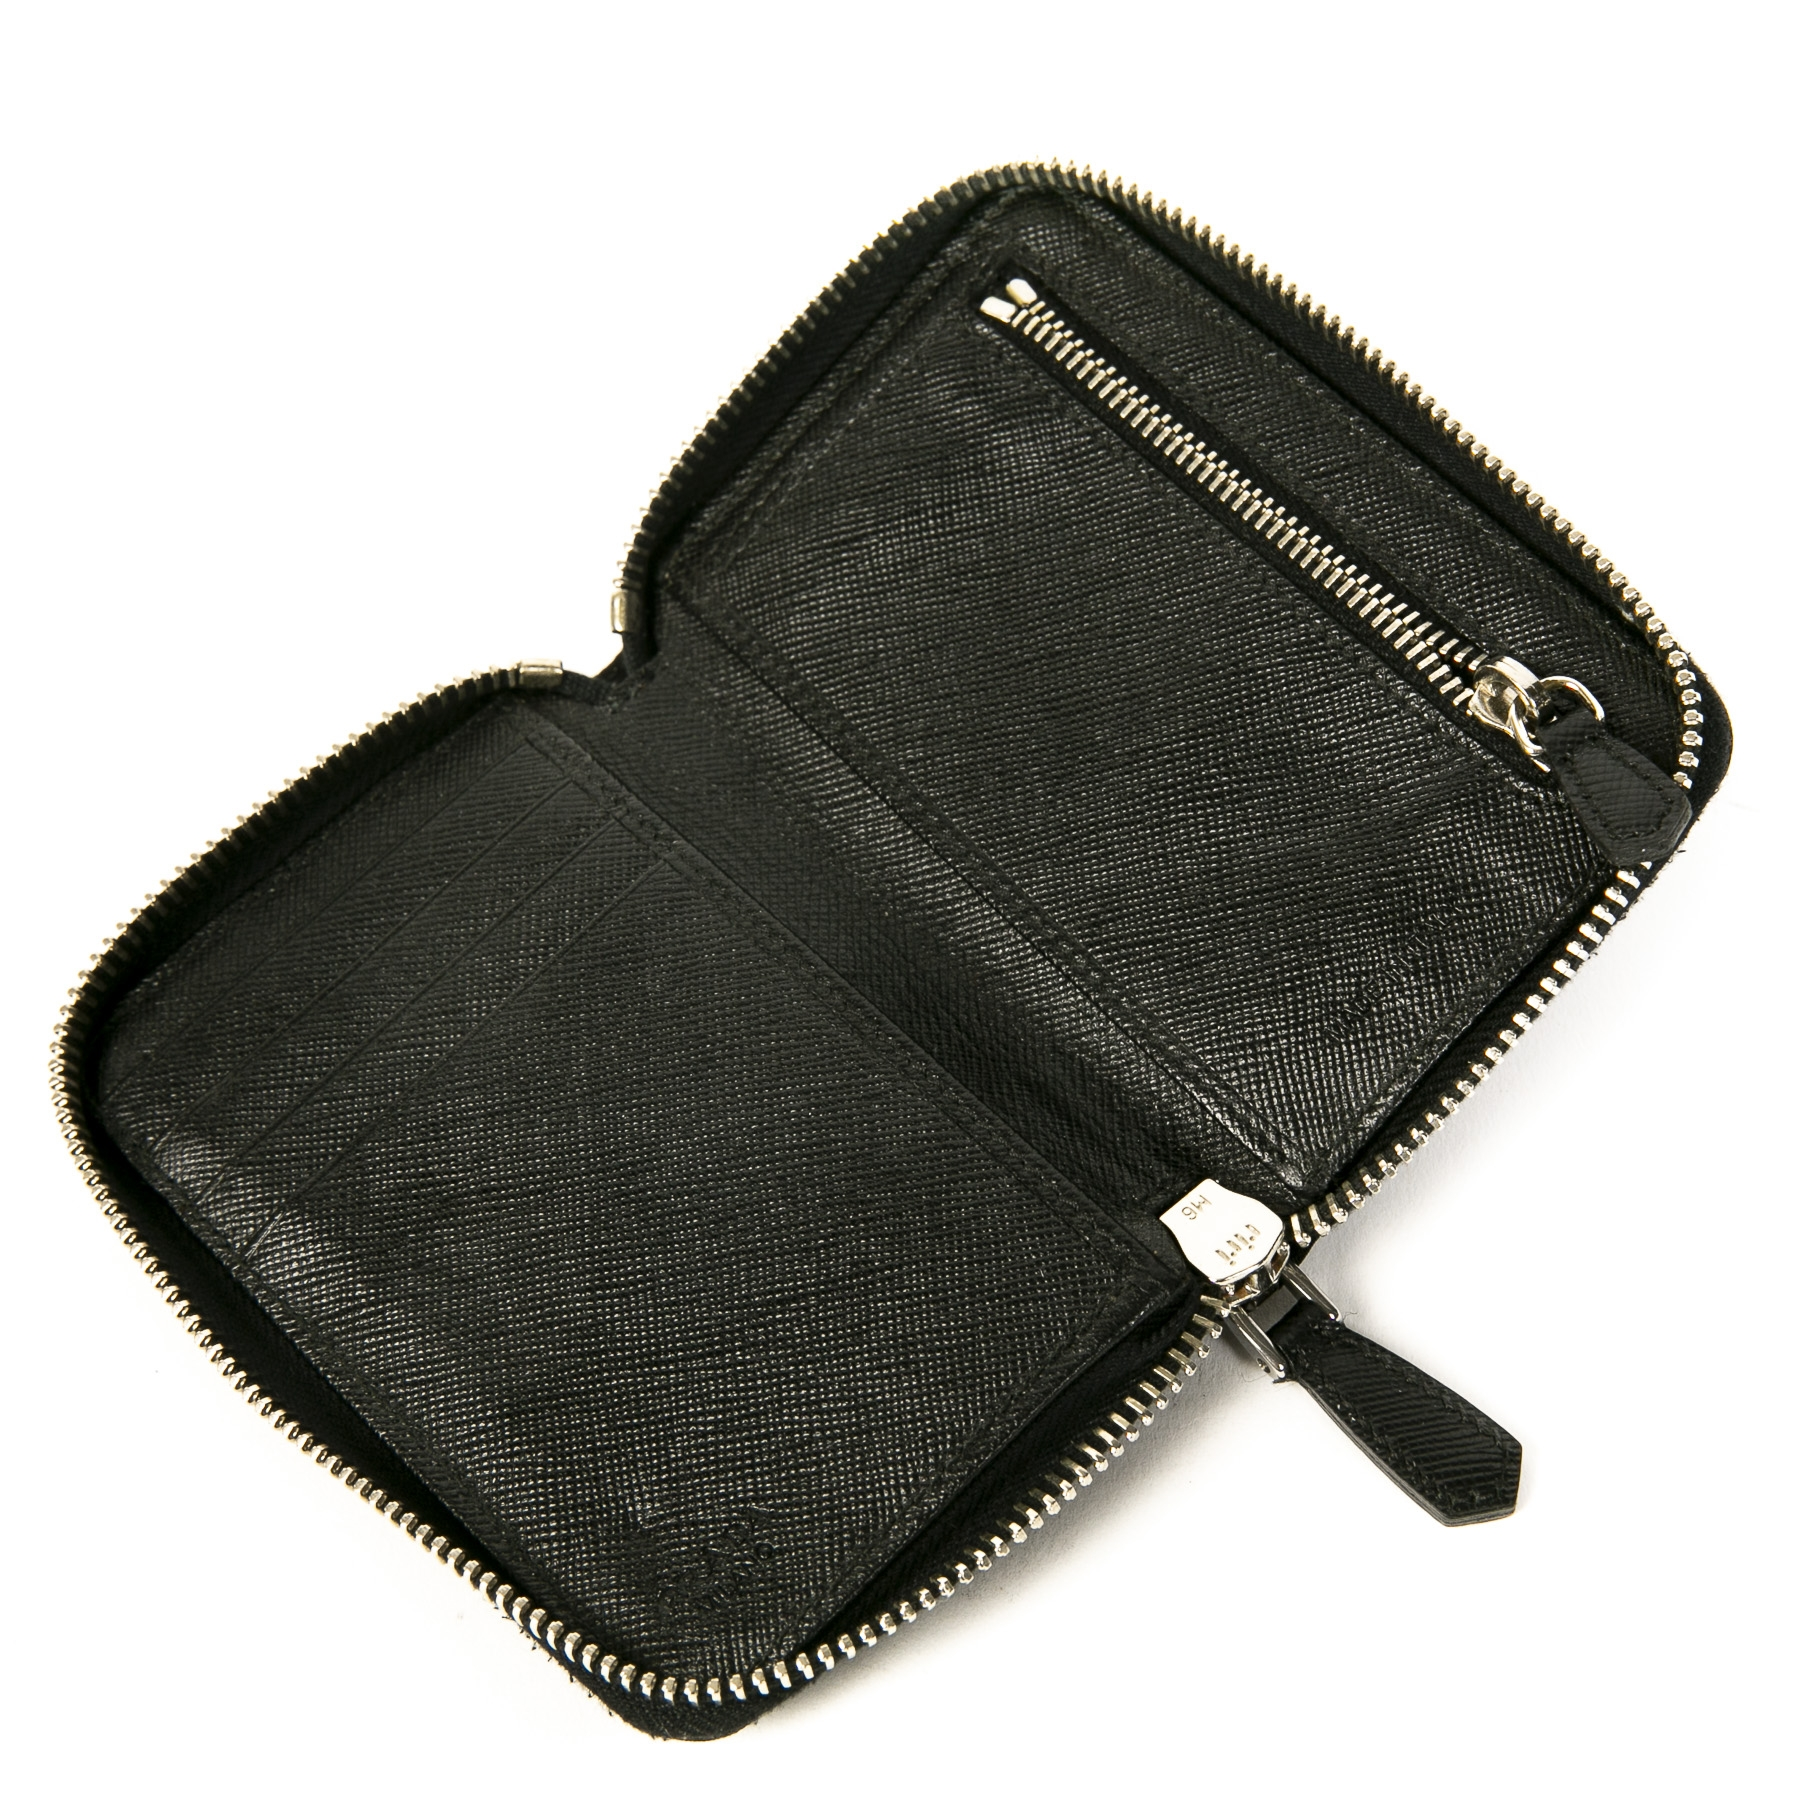 Authentieke tweedehands vintage Prada Black Leather Nylon Wallet bij online webshop LabelLOV